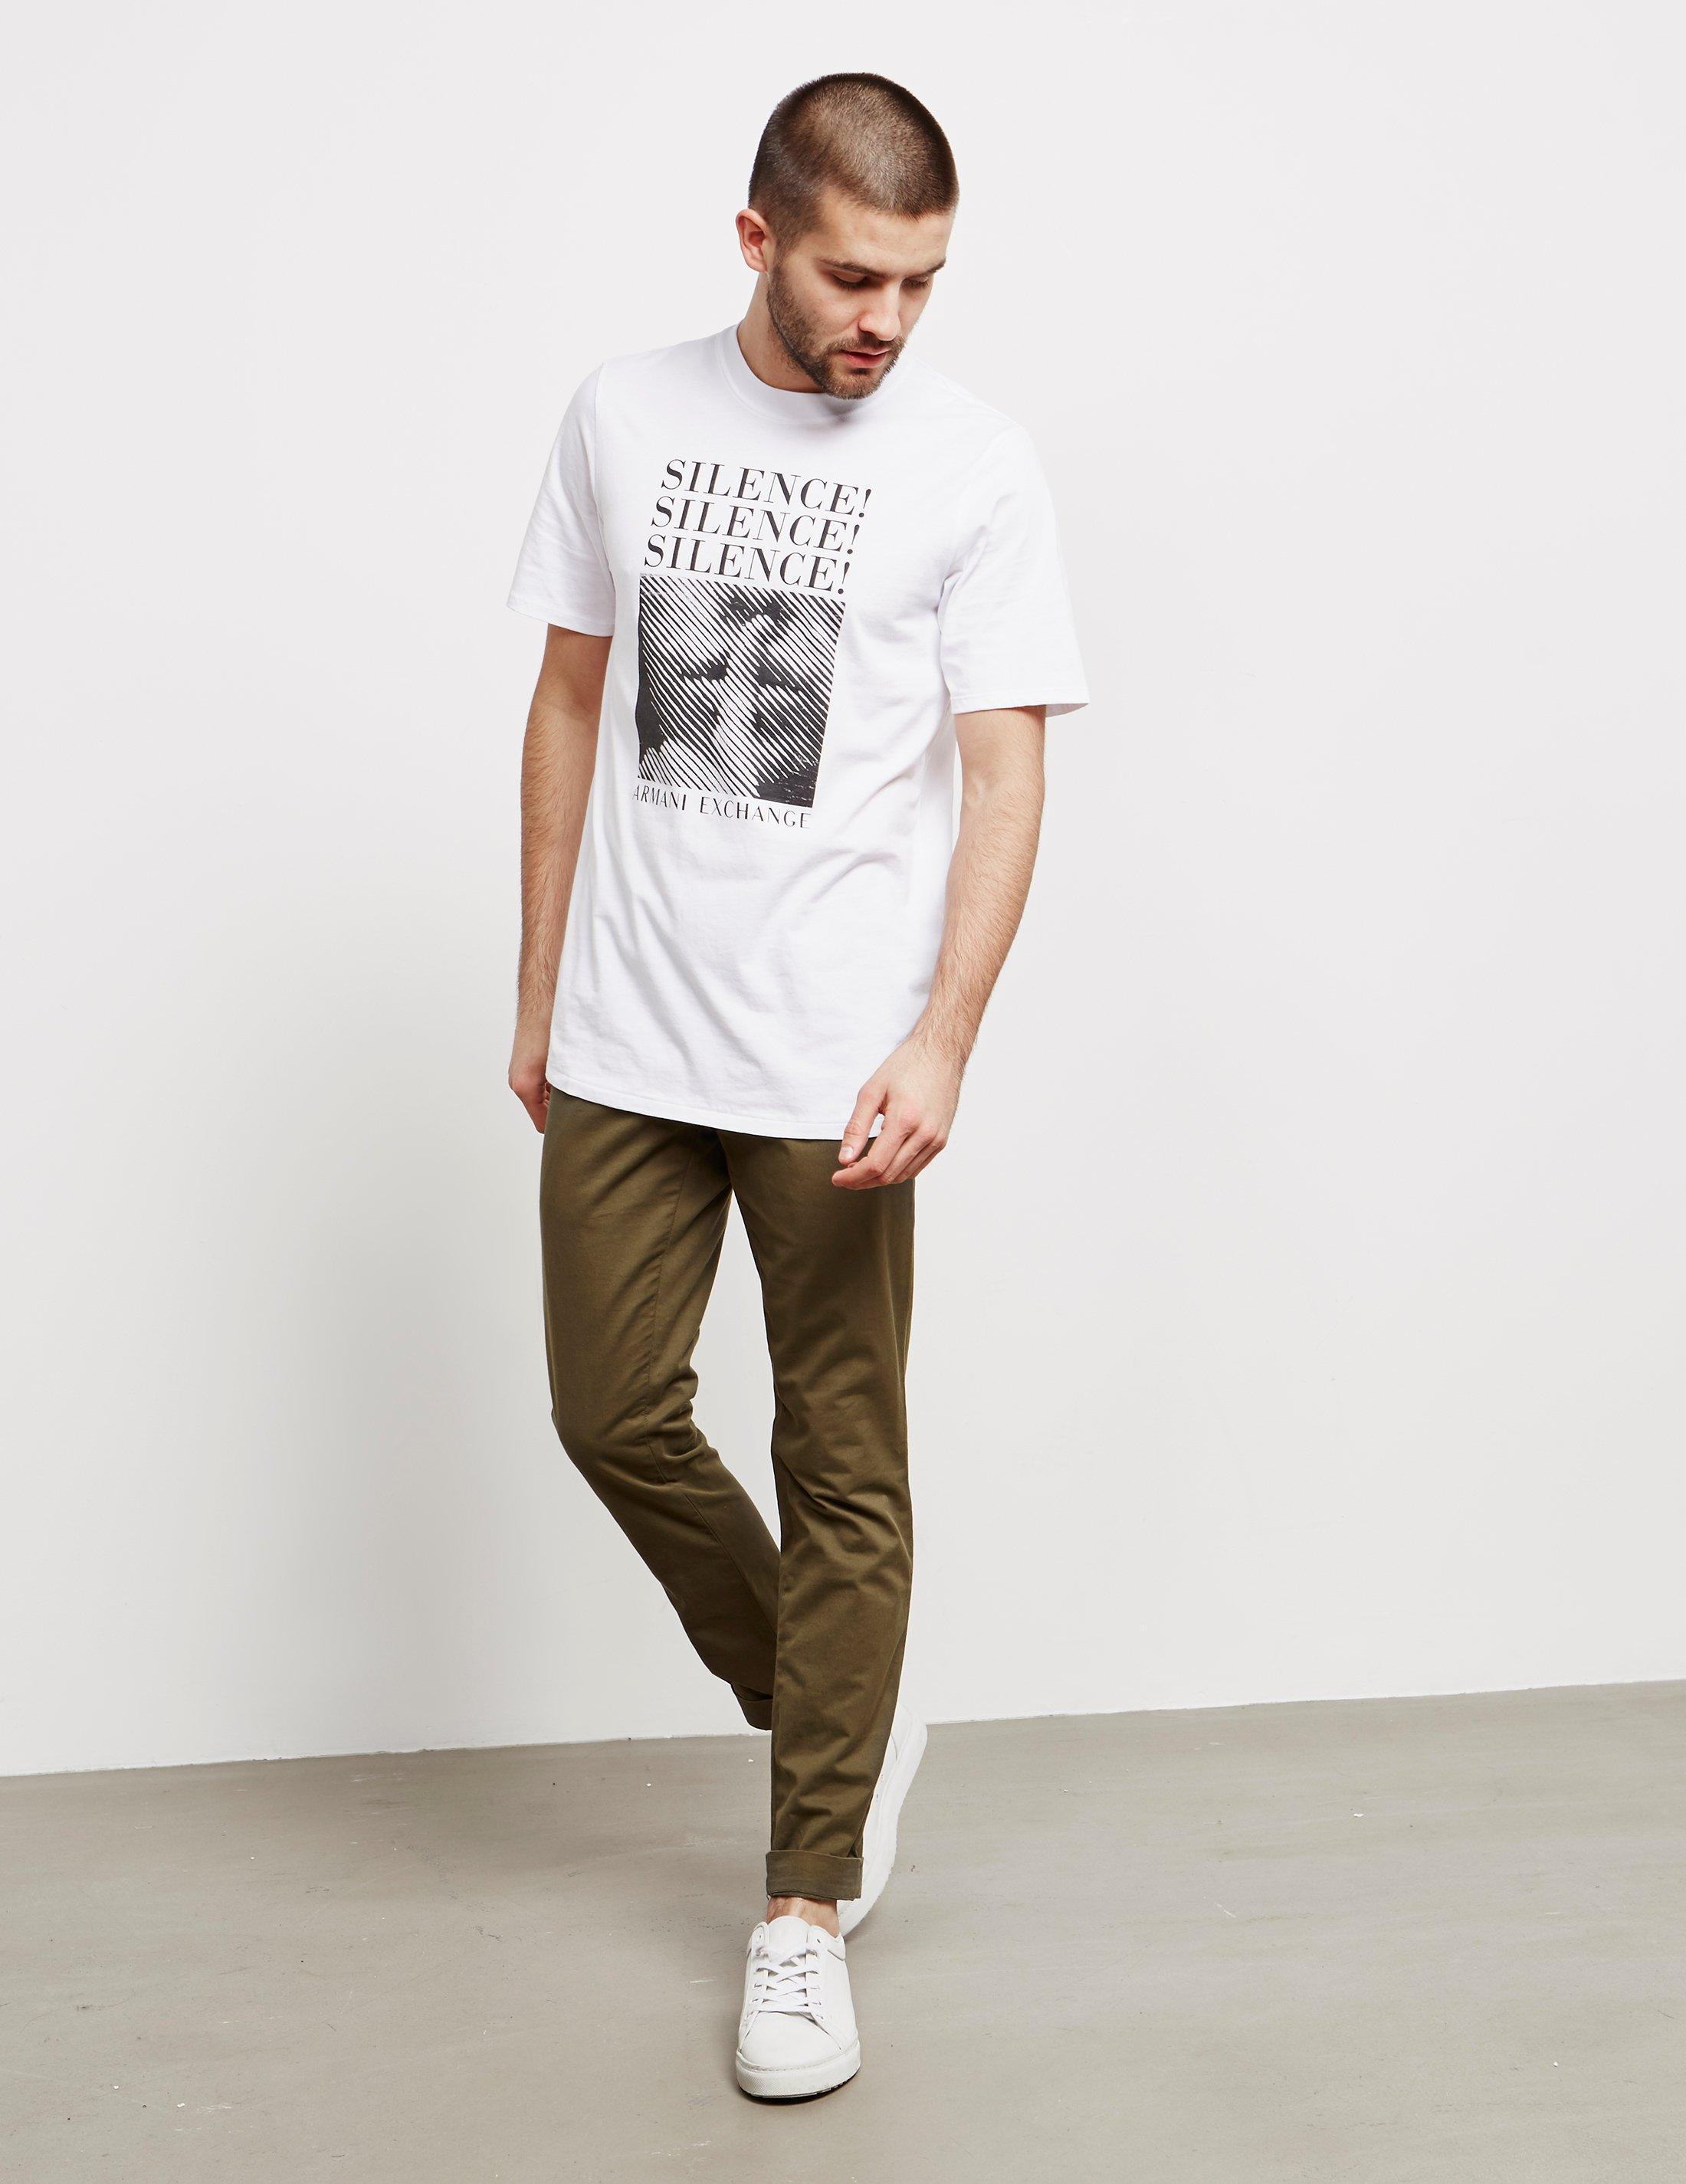 ad9d1c24fce122 Lyst - Armani Exchange Silence Short Sleeve T-shirt - Online Exclusive  White in White for Men - Save 2%